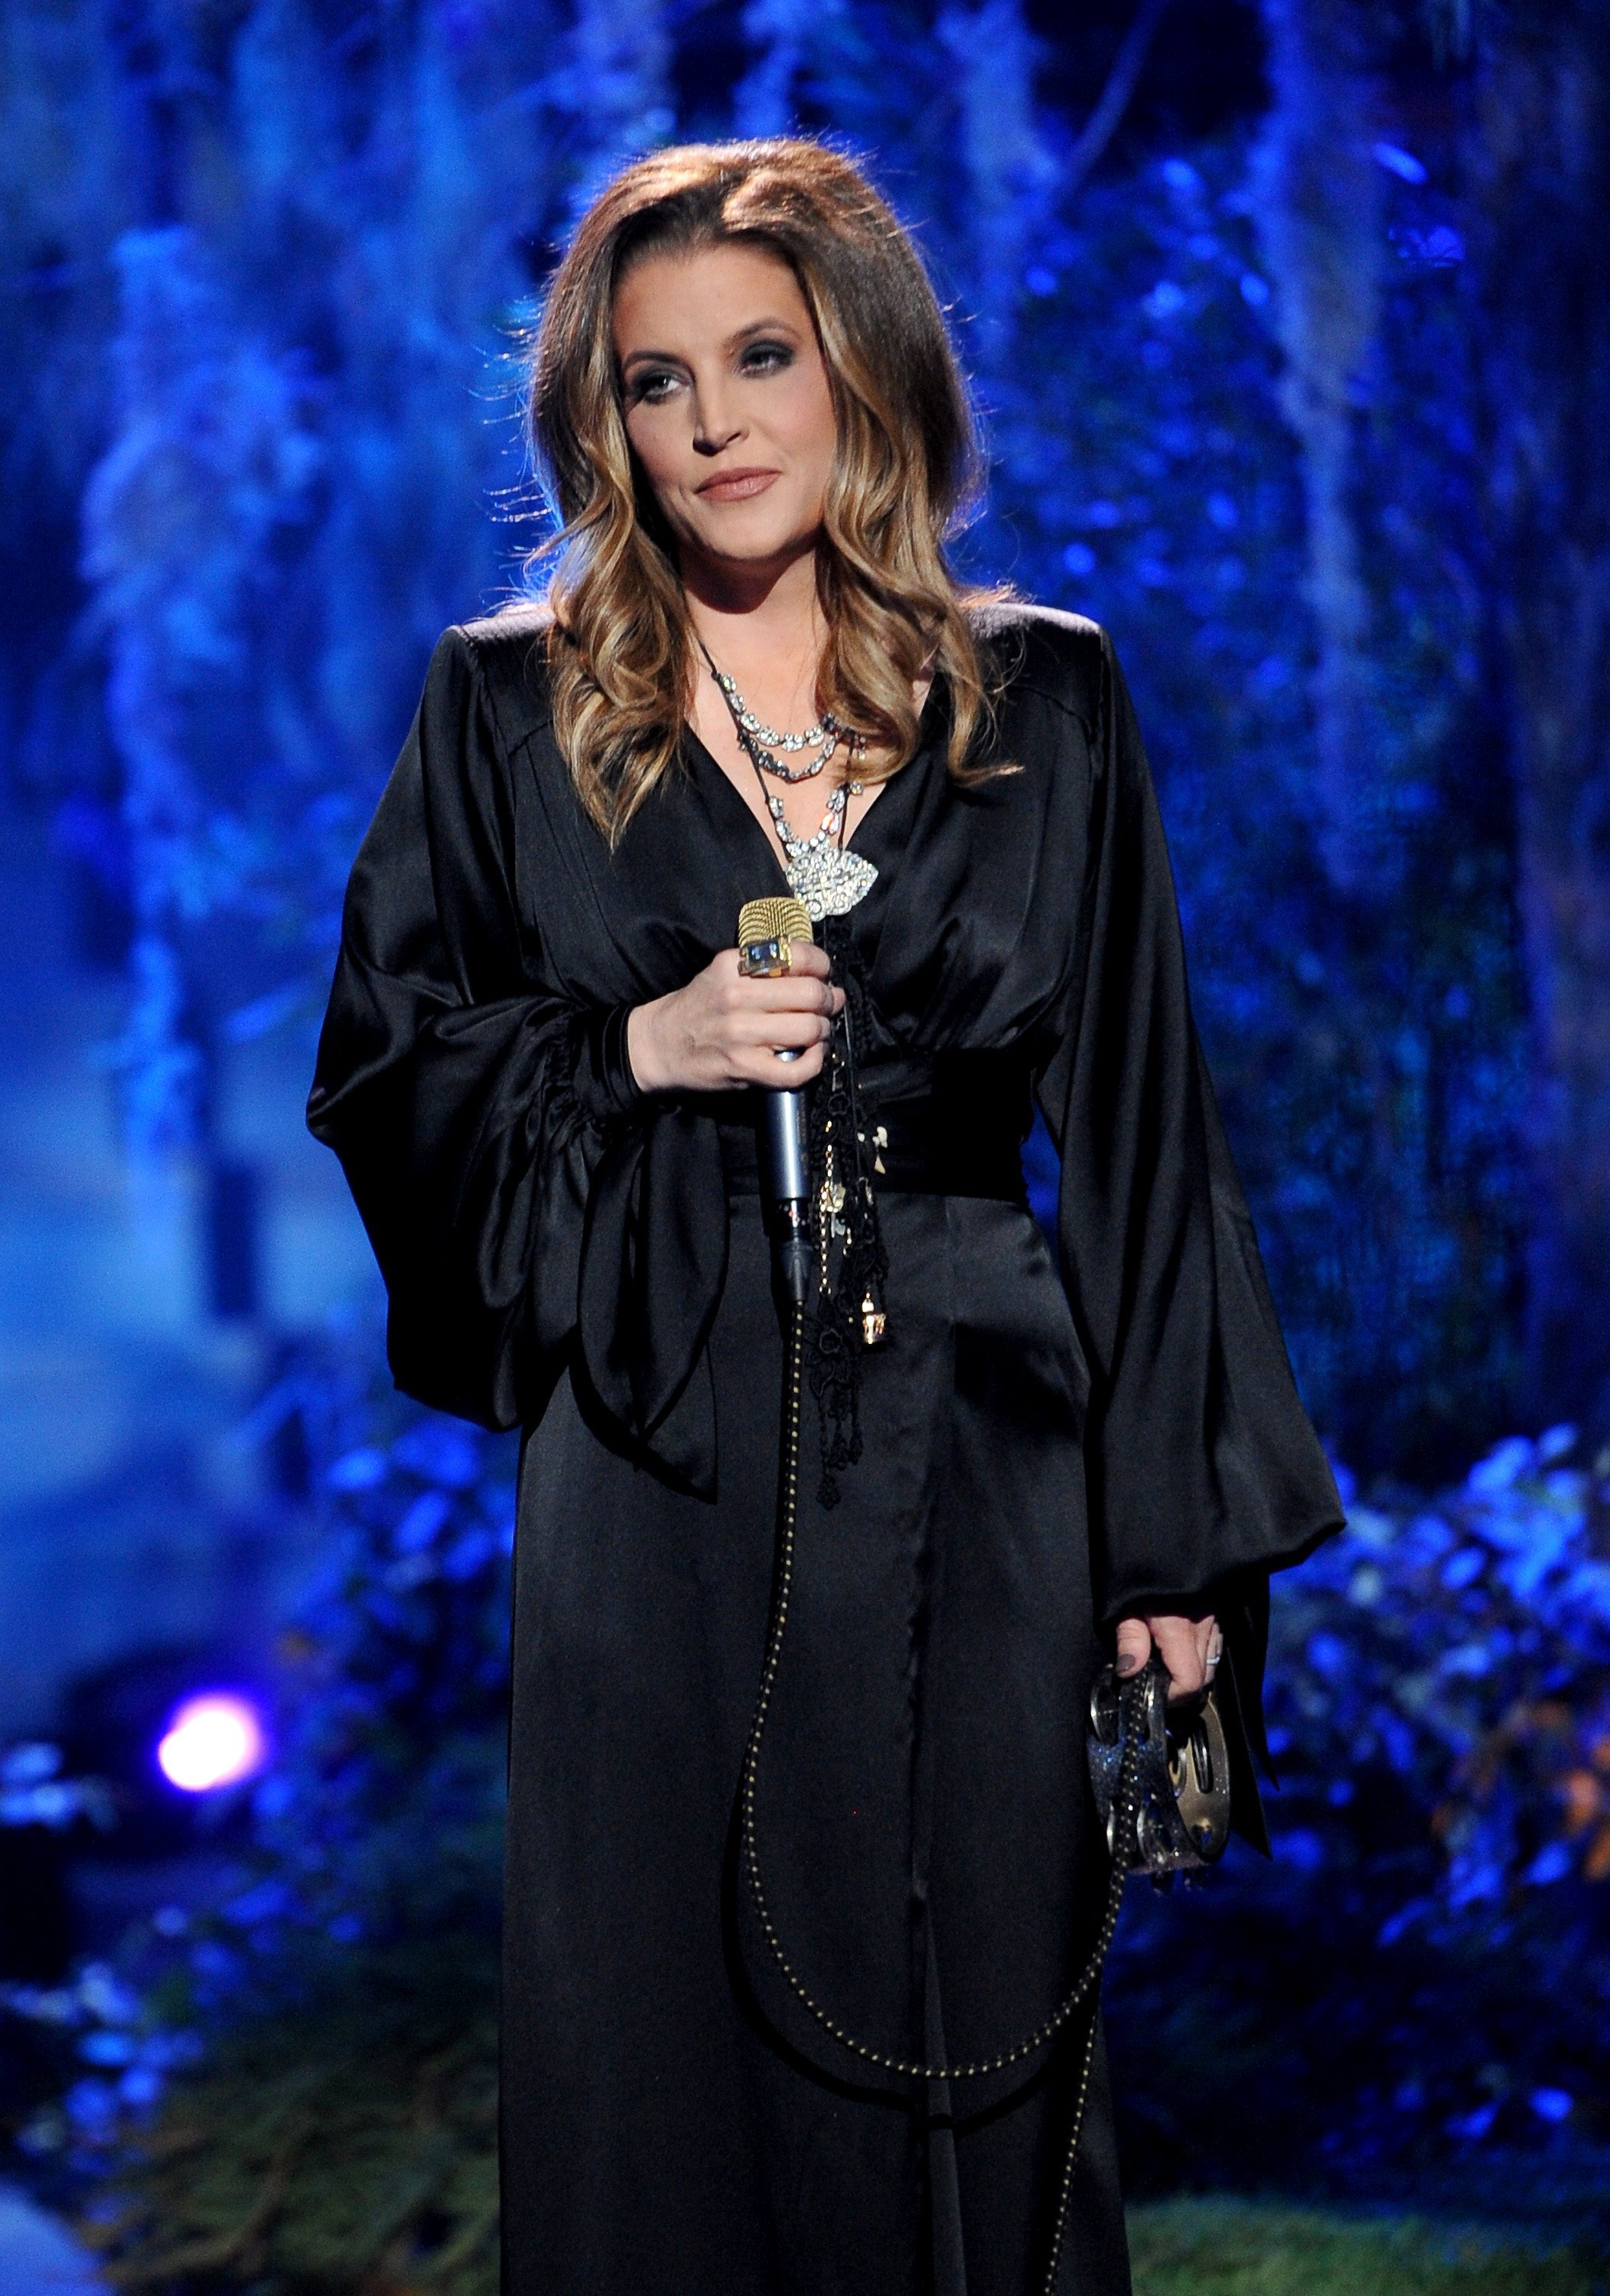 Lisa Marie Presley on stage | Photo: Getty Images